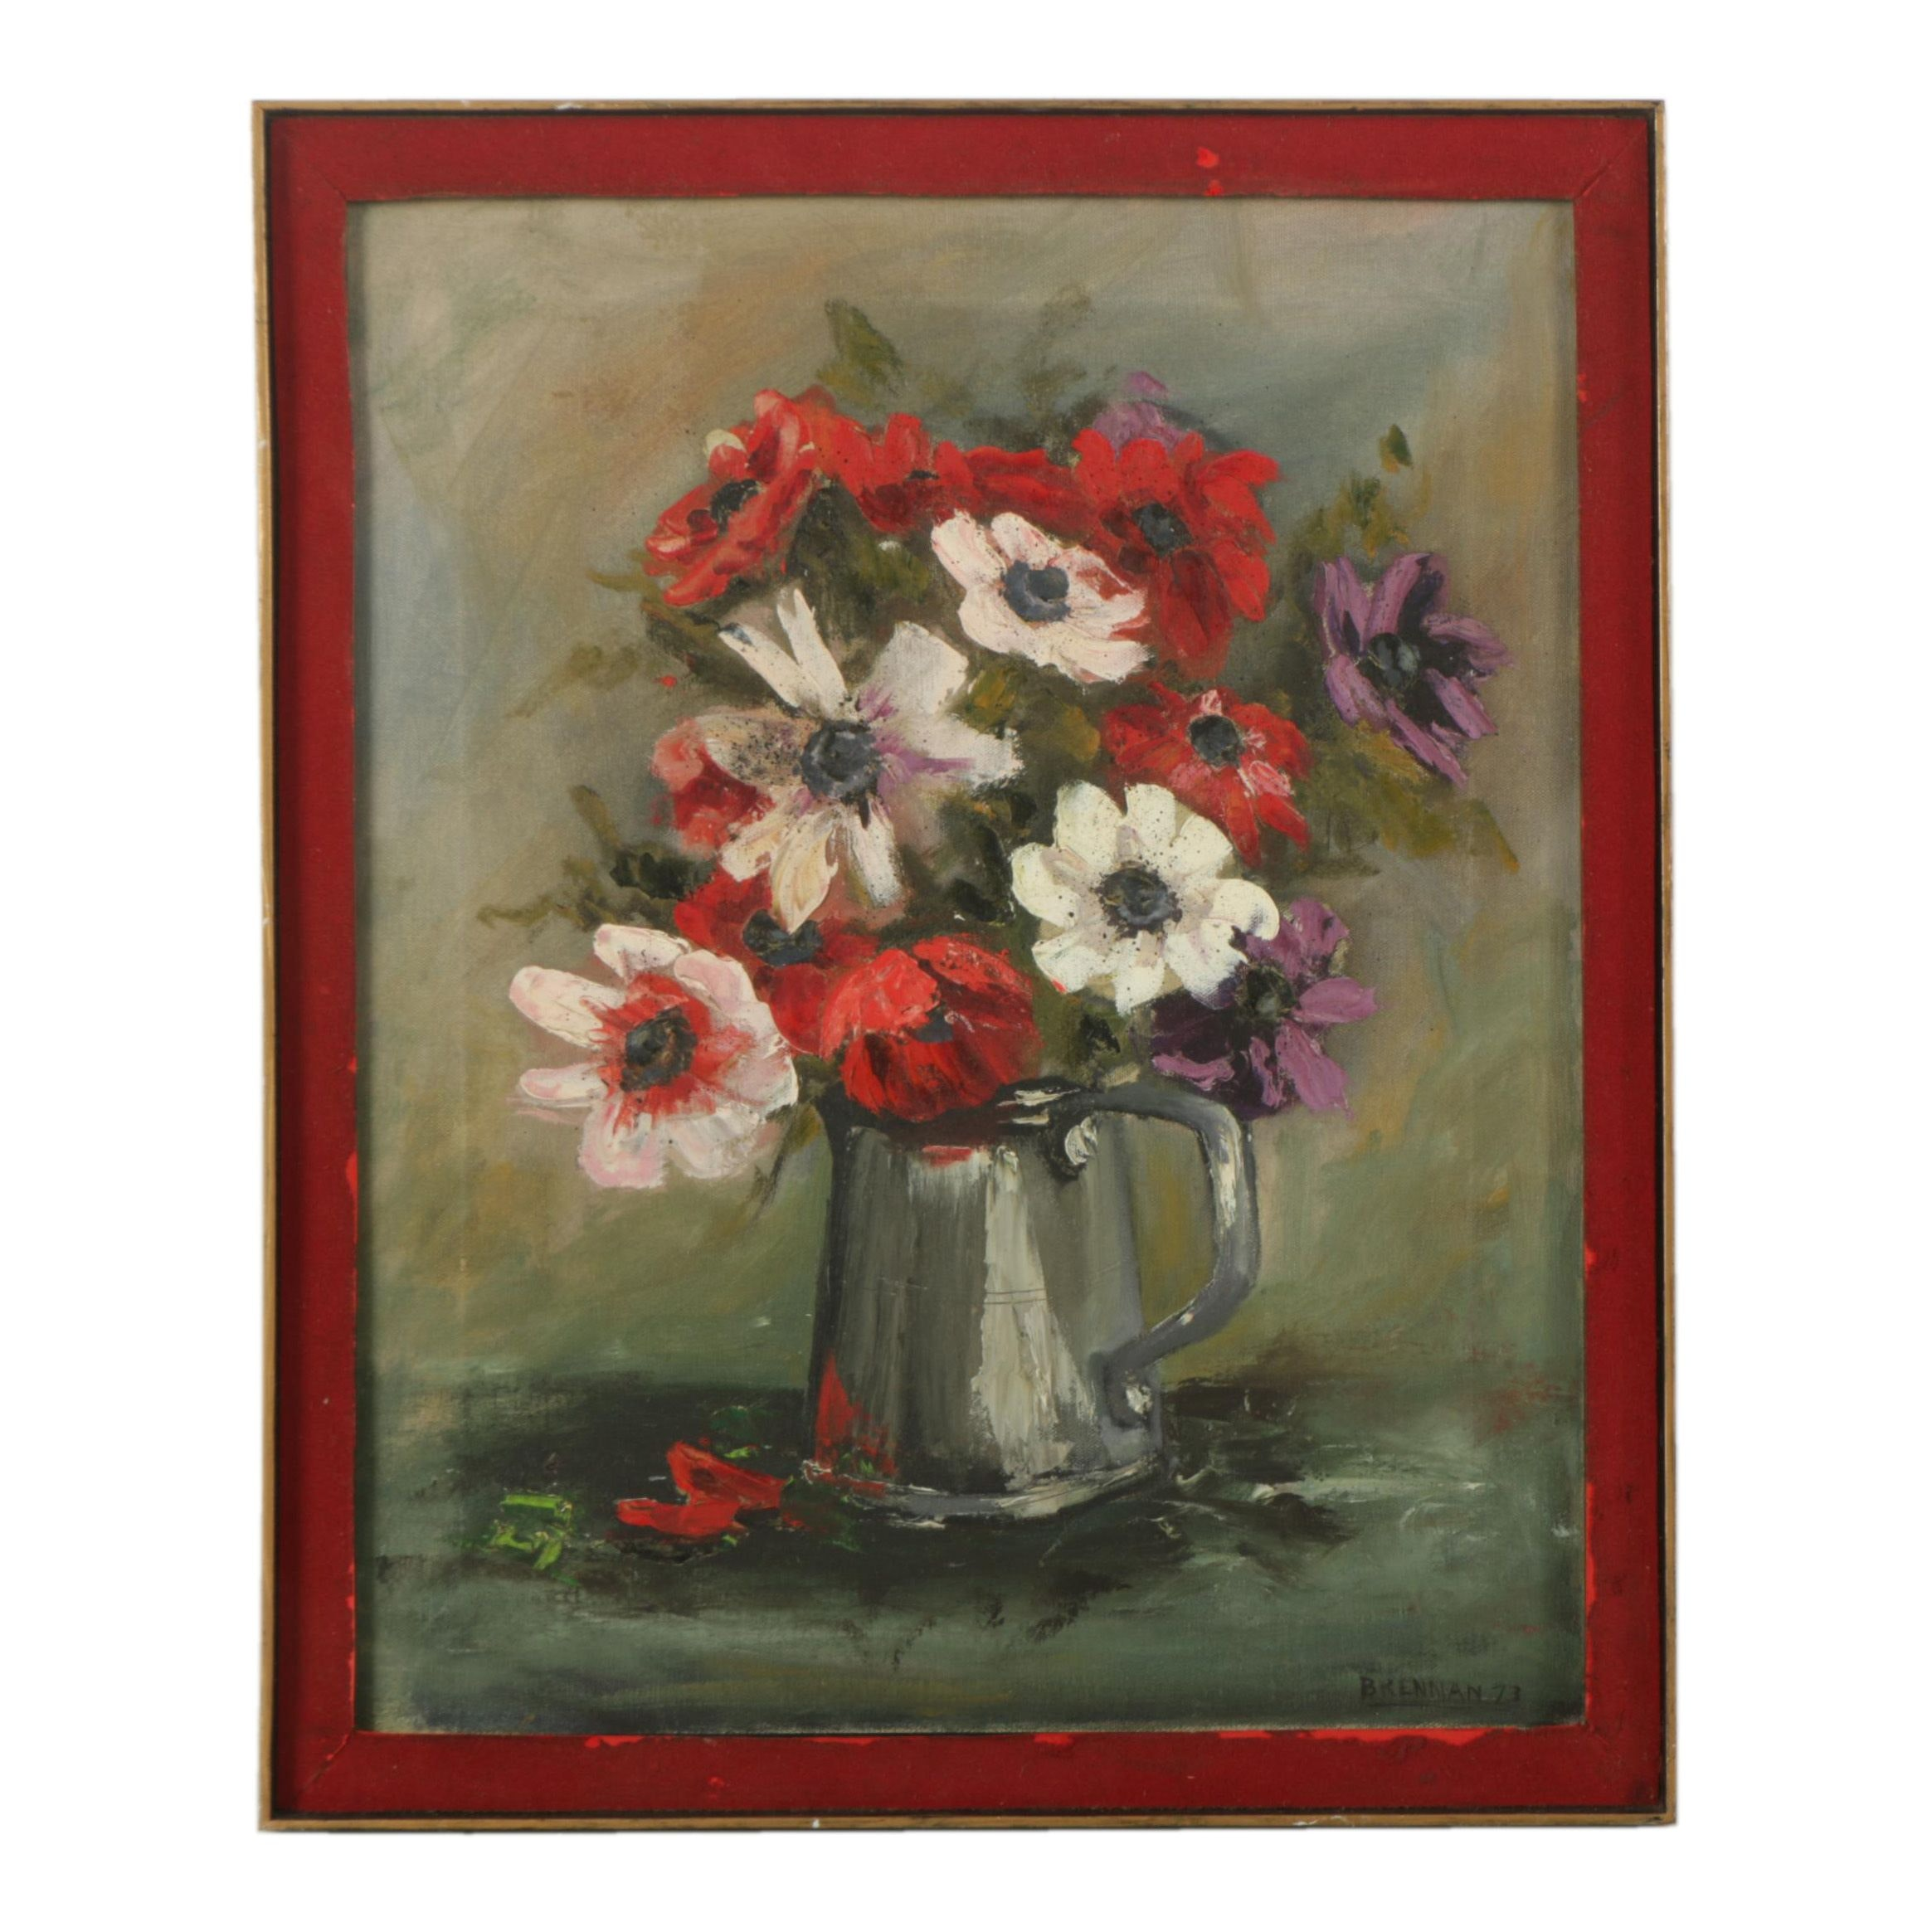 Brennan Oil Painting on Canvas of a Floral Still Life